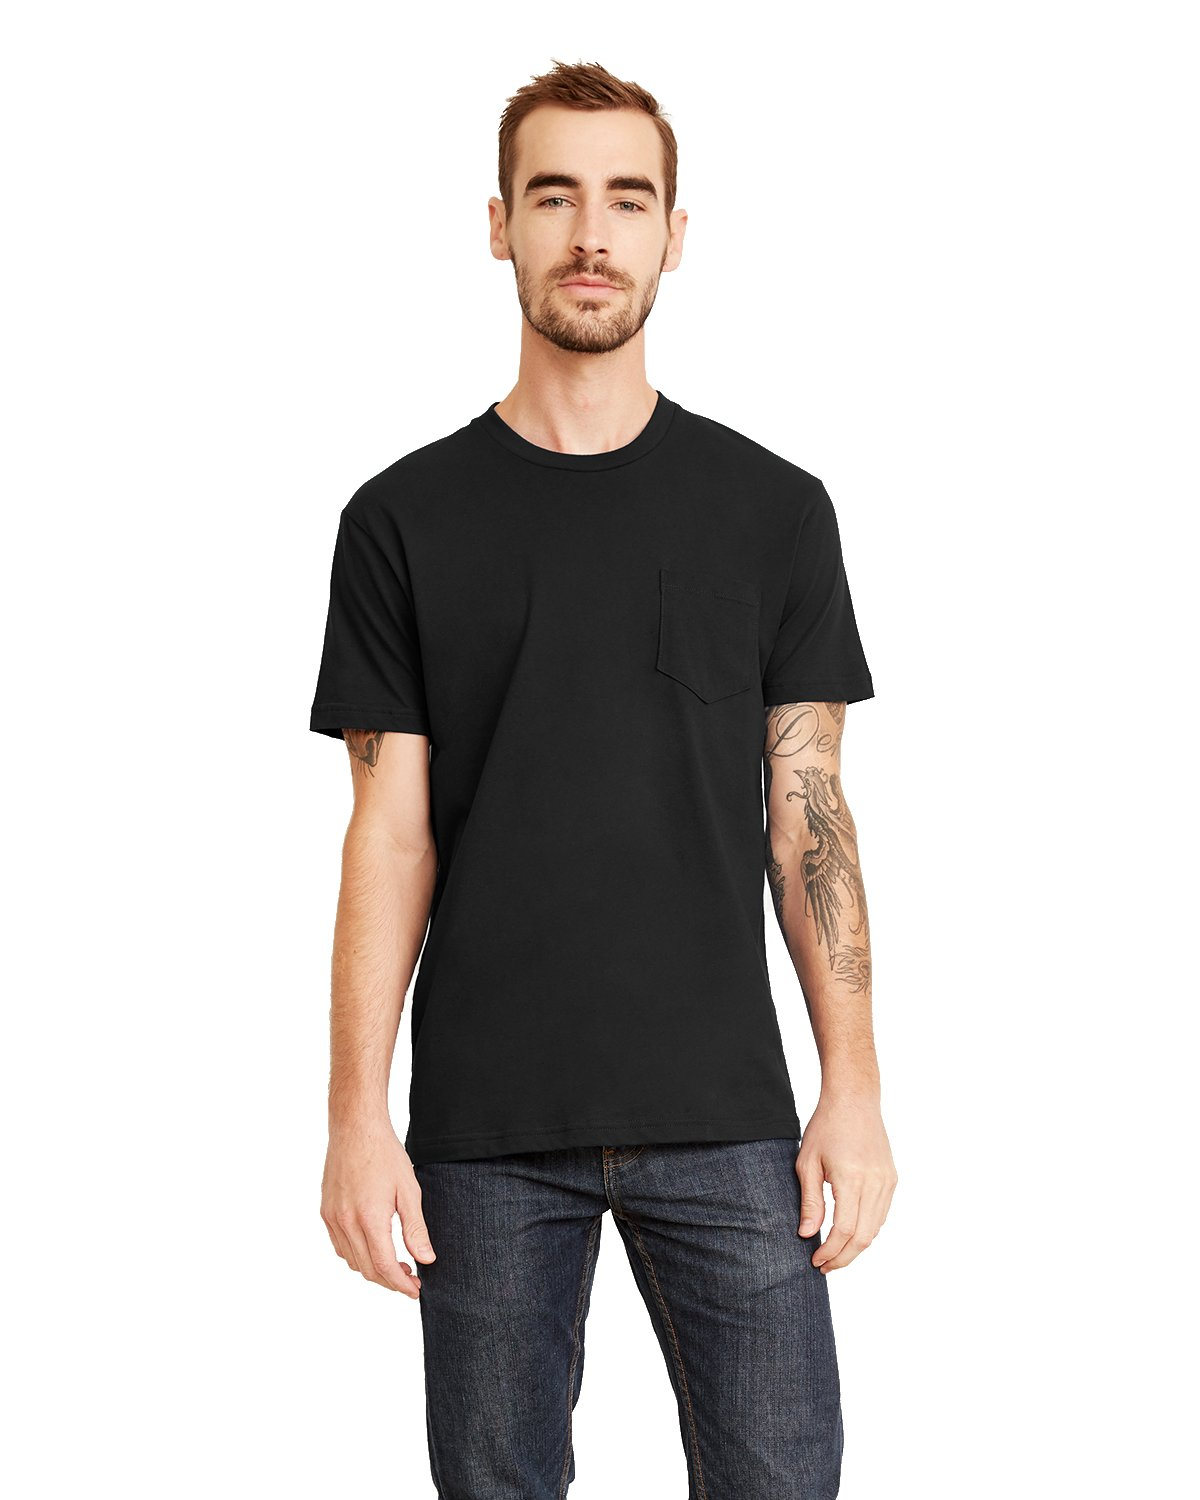 Next Level Men's Pocket Crew T-Shirt, Black, Large